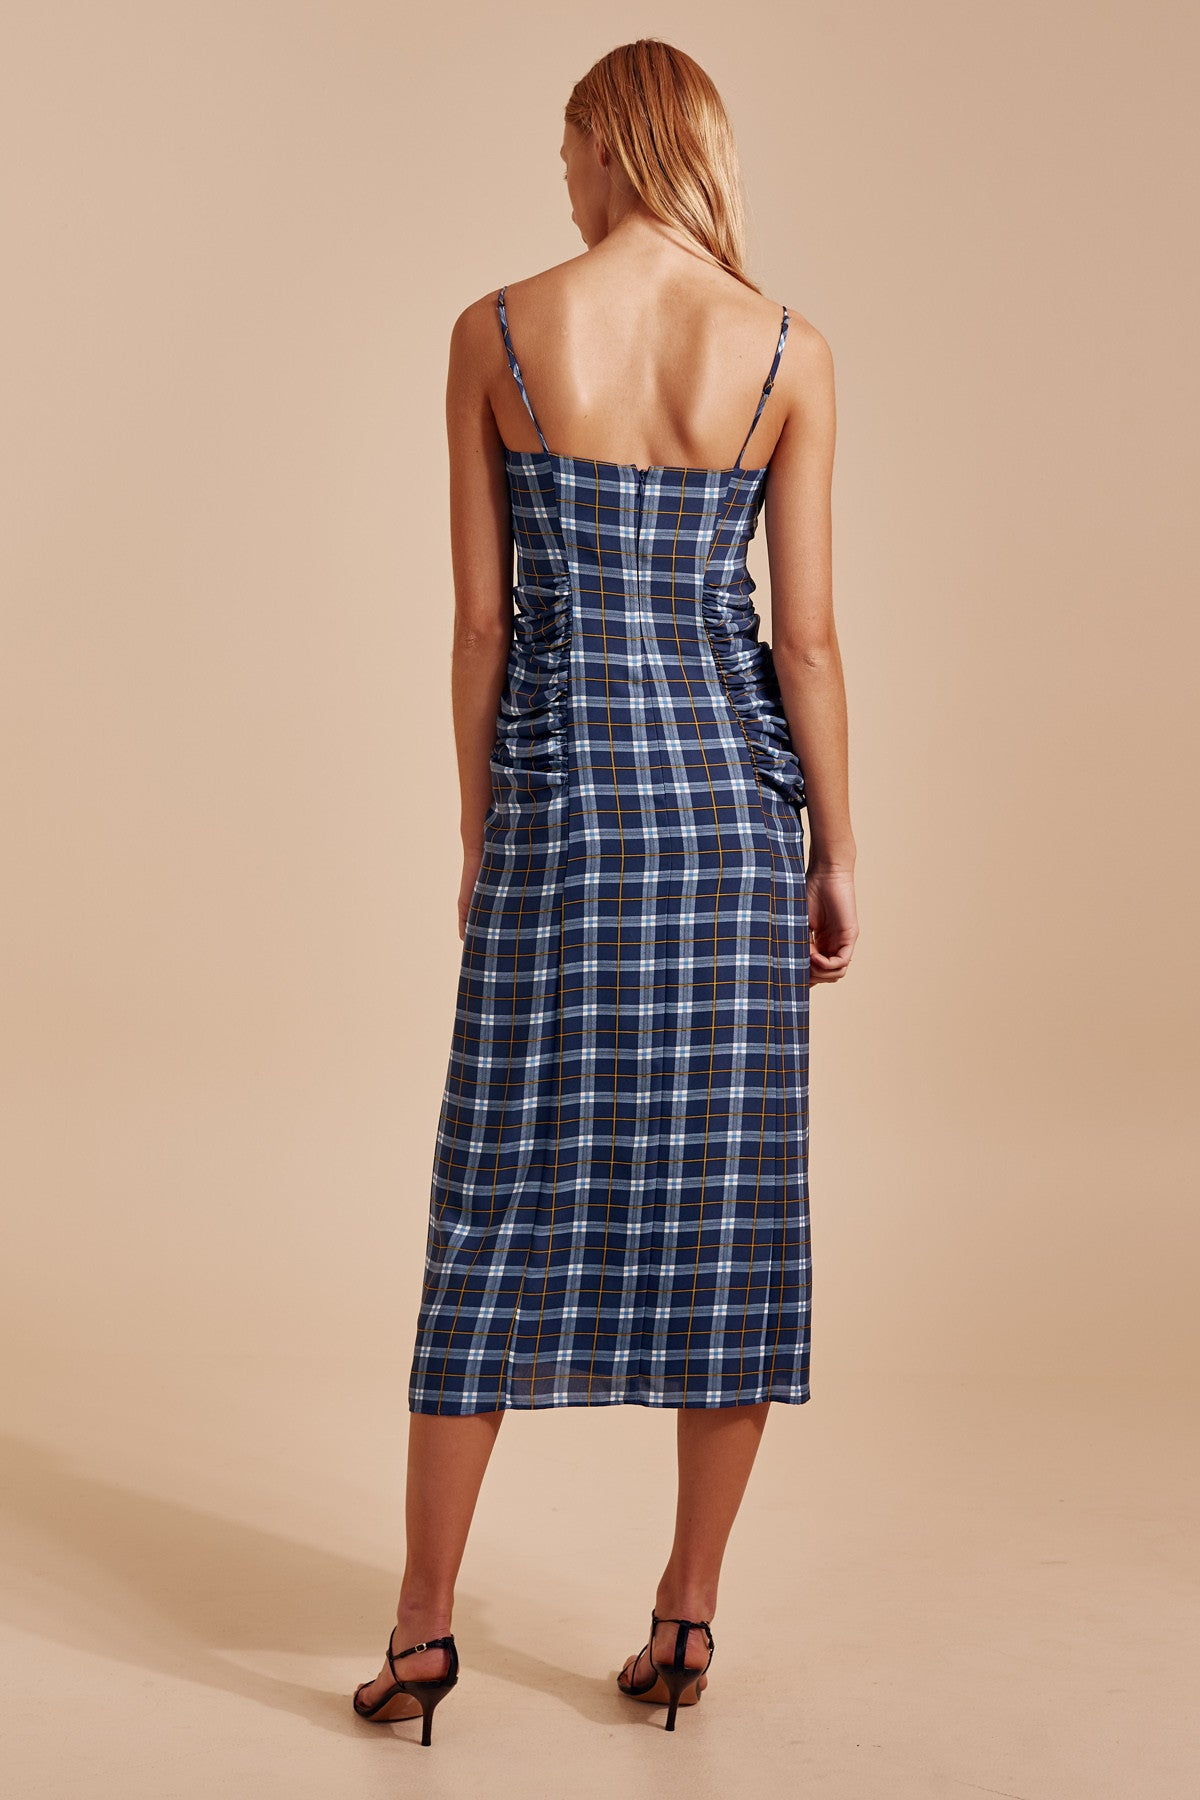 DEFINE SHORT SLEEVE DRESS blue check